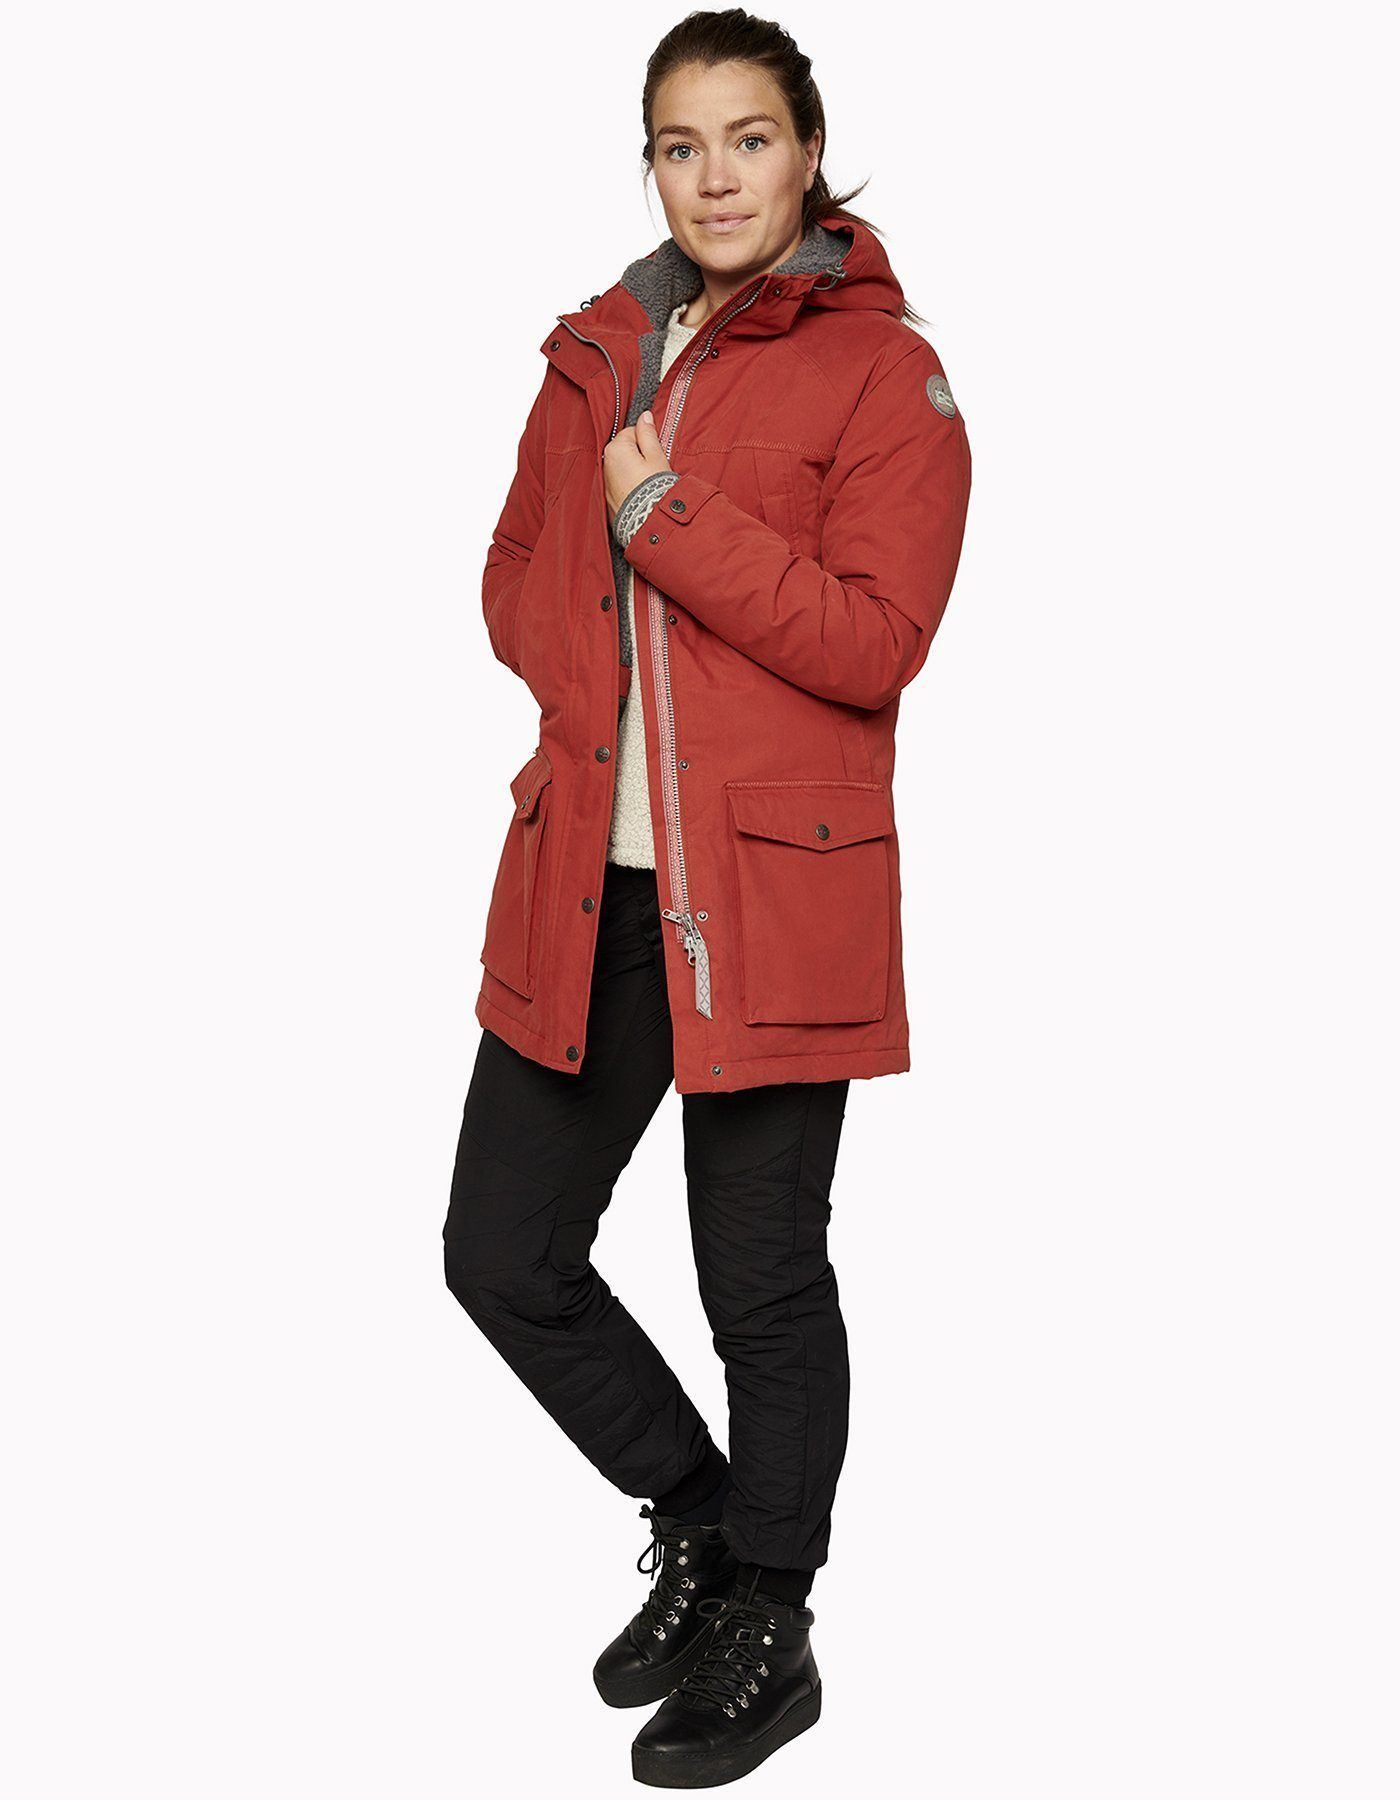 Varg - Women's Åre Parka Jacket - Recycled polyester & cotton - Weekendbee - sustainable sportswear